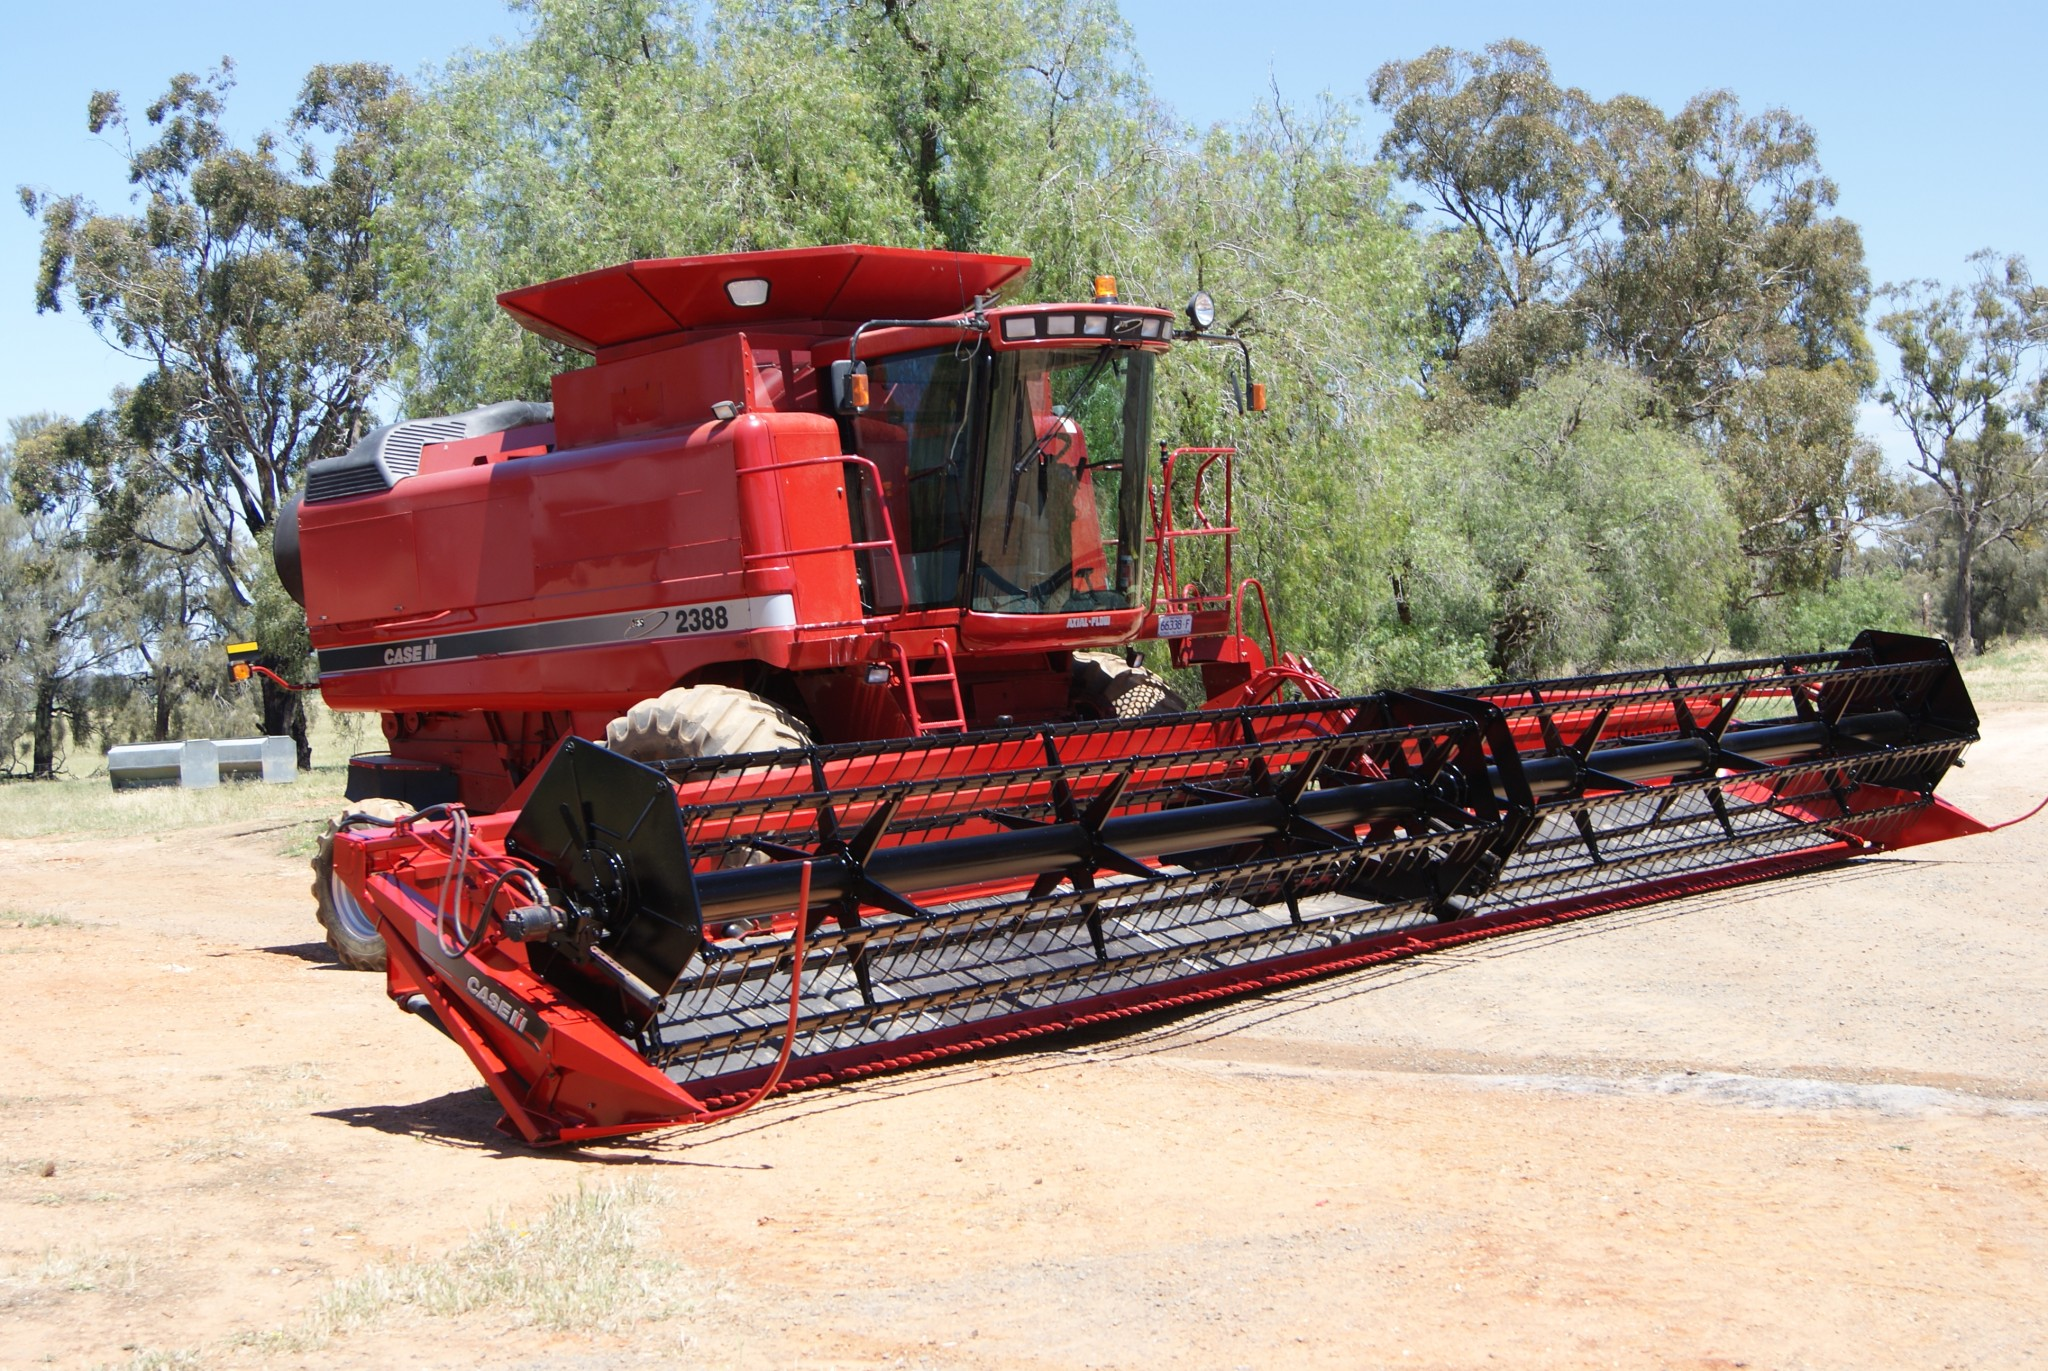 Sandblasted and spray painted harvester Southern NSW